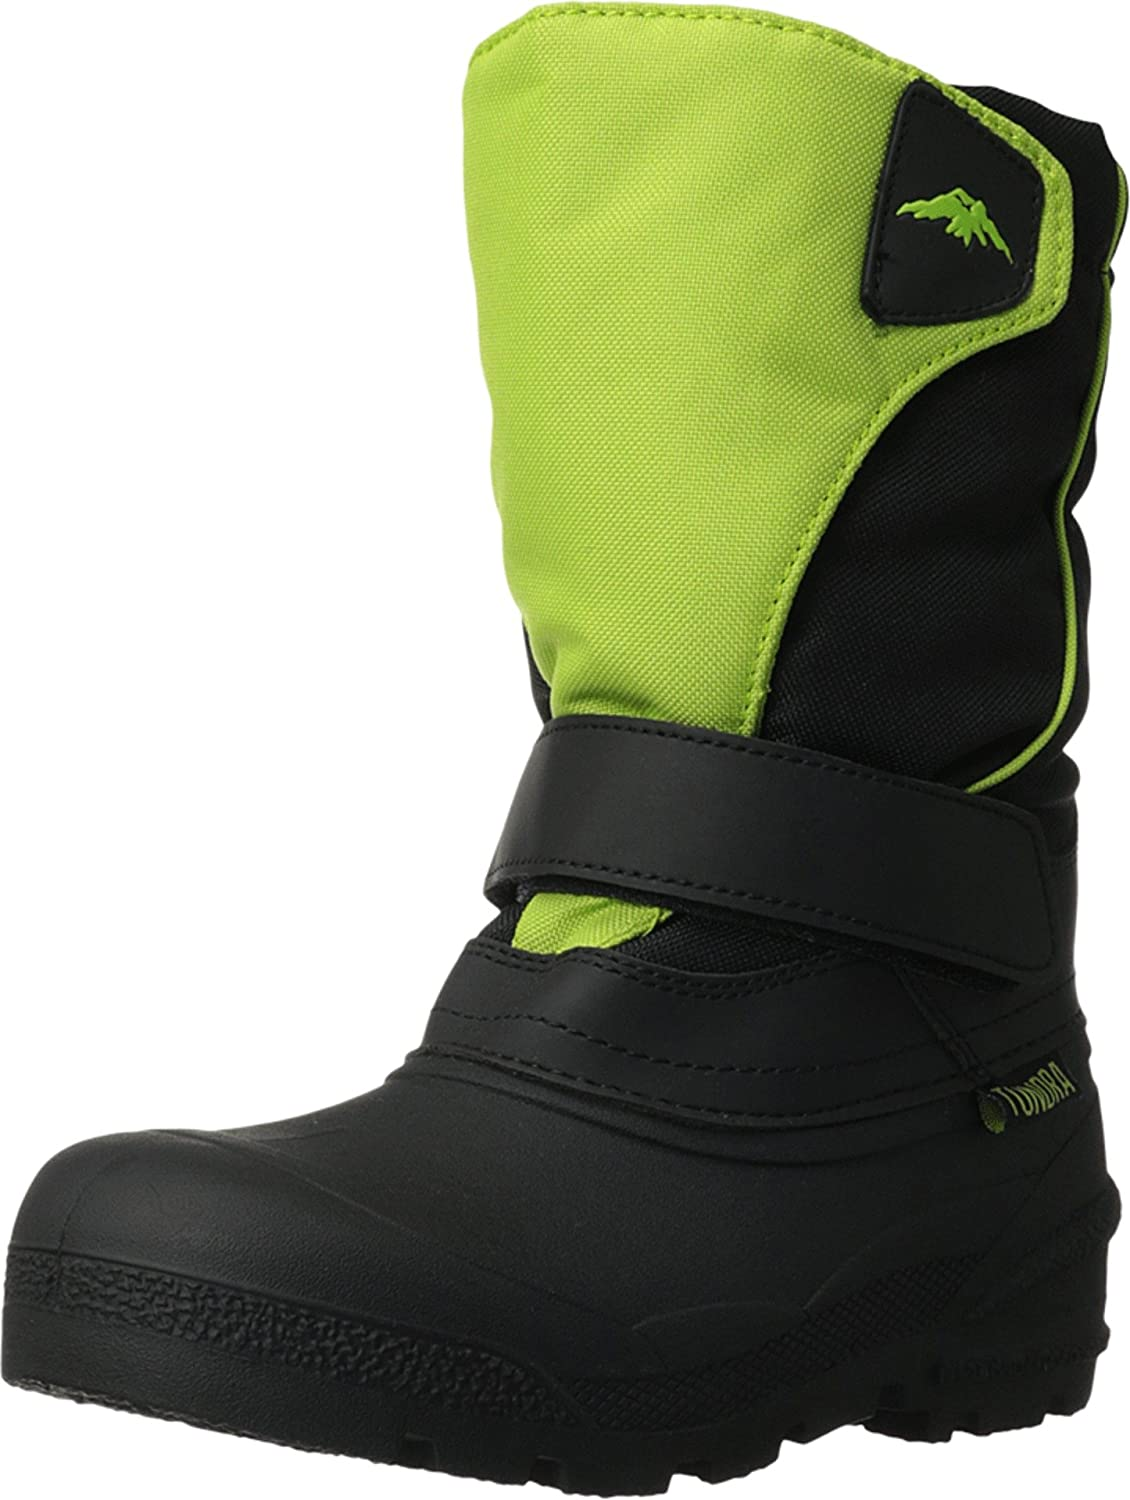 Tundra Quebec Boot (Toddler/Little Kid/Big Kid) Tundra Quebec N - K